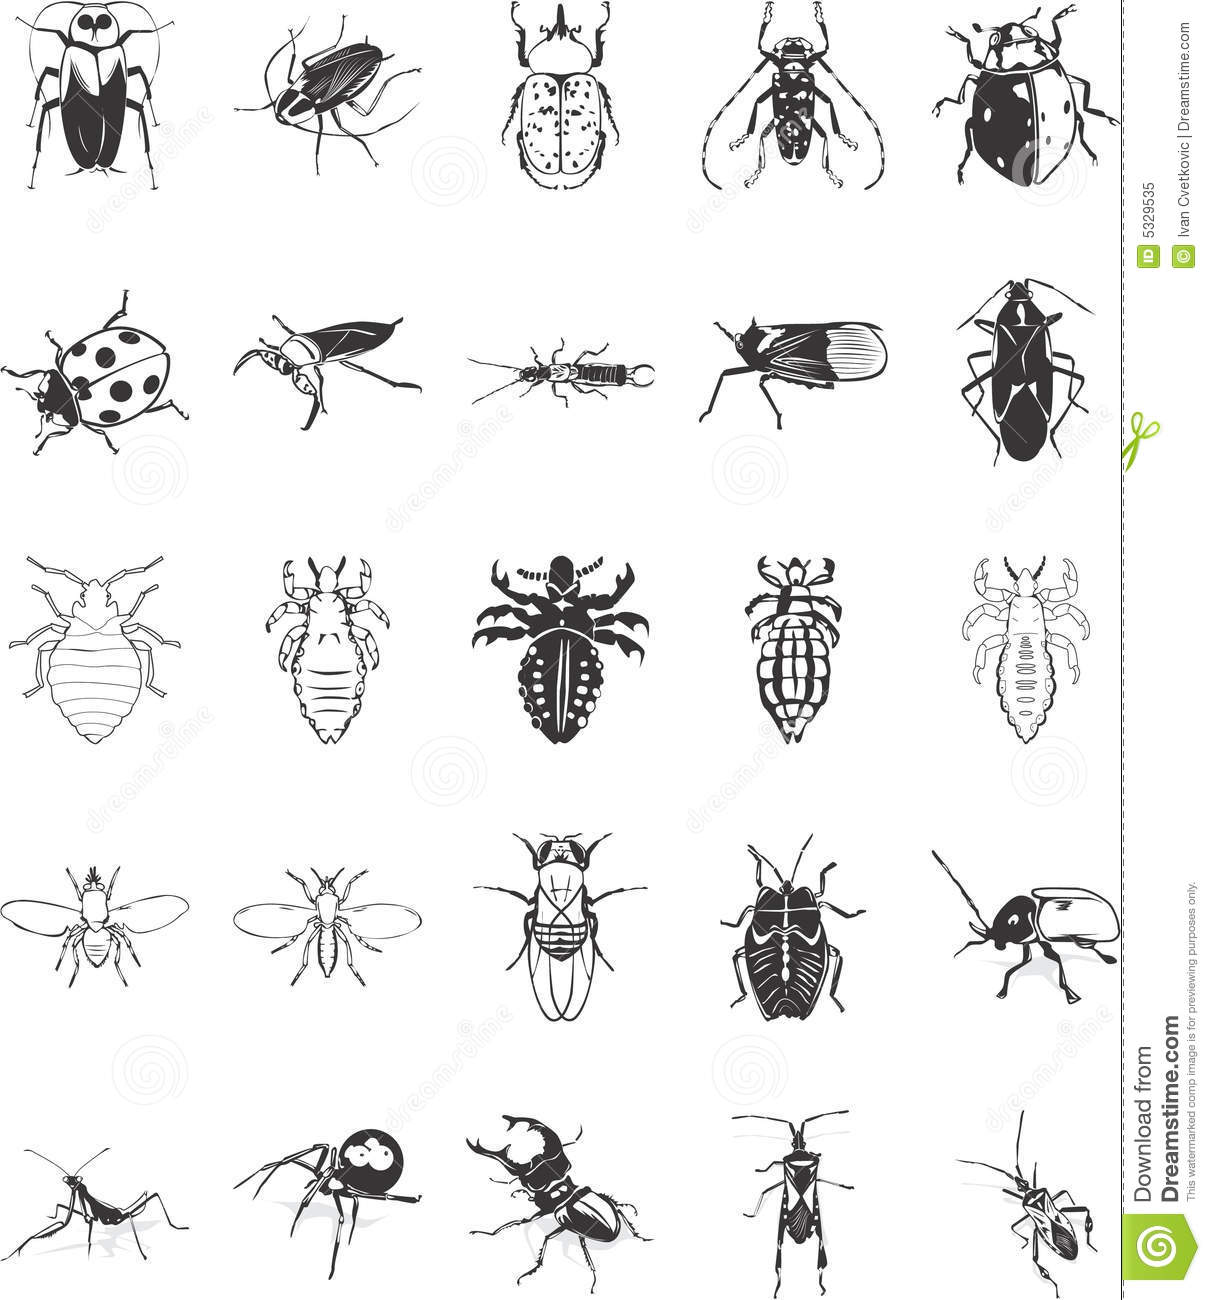 Illustrations Of Bugs Royalty Free Stock Photo